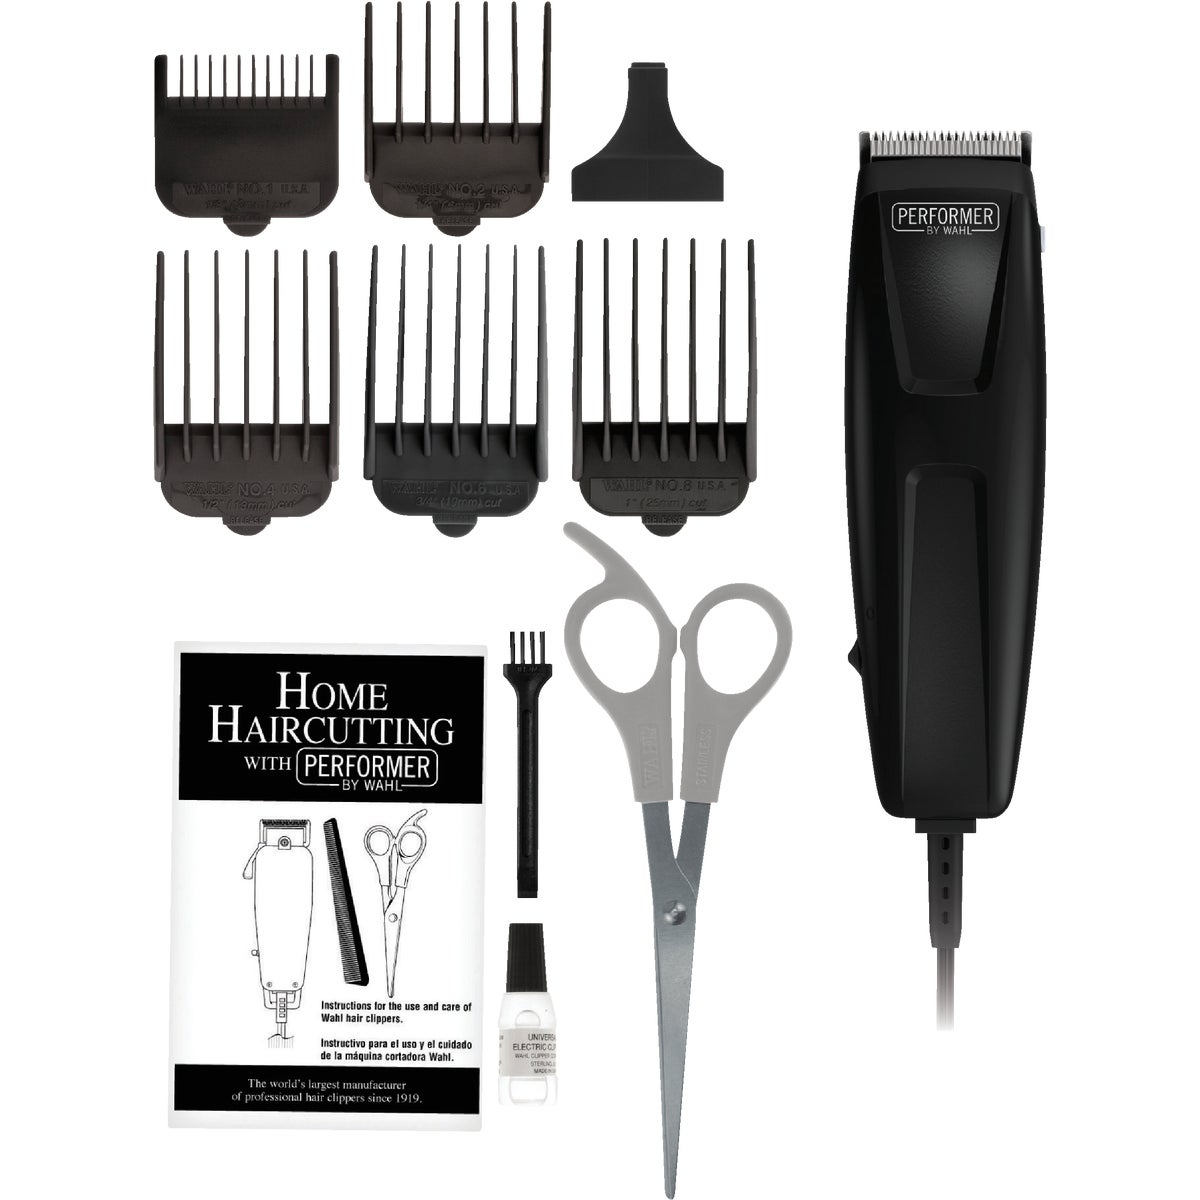 10PC HAIR CUTTING KIT - 9633-502 by Wahl Clipper Corp